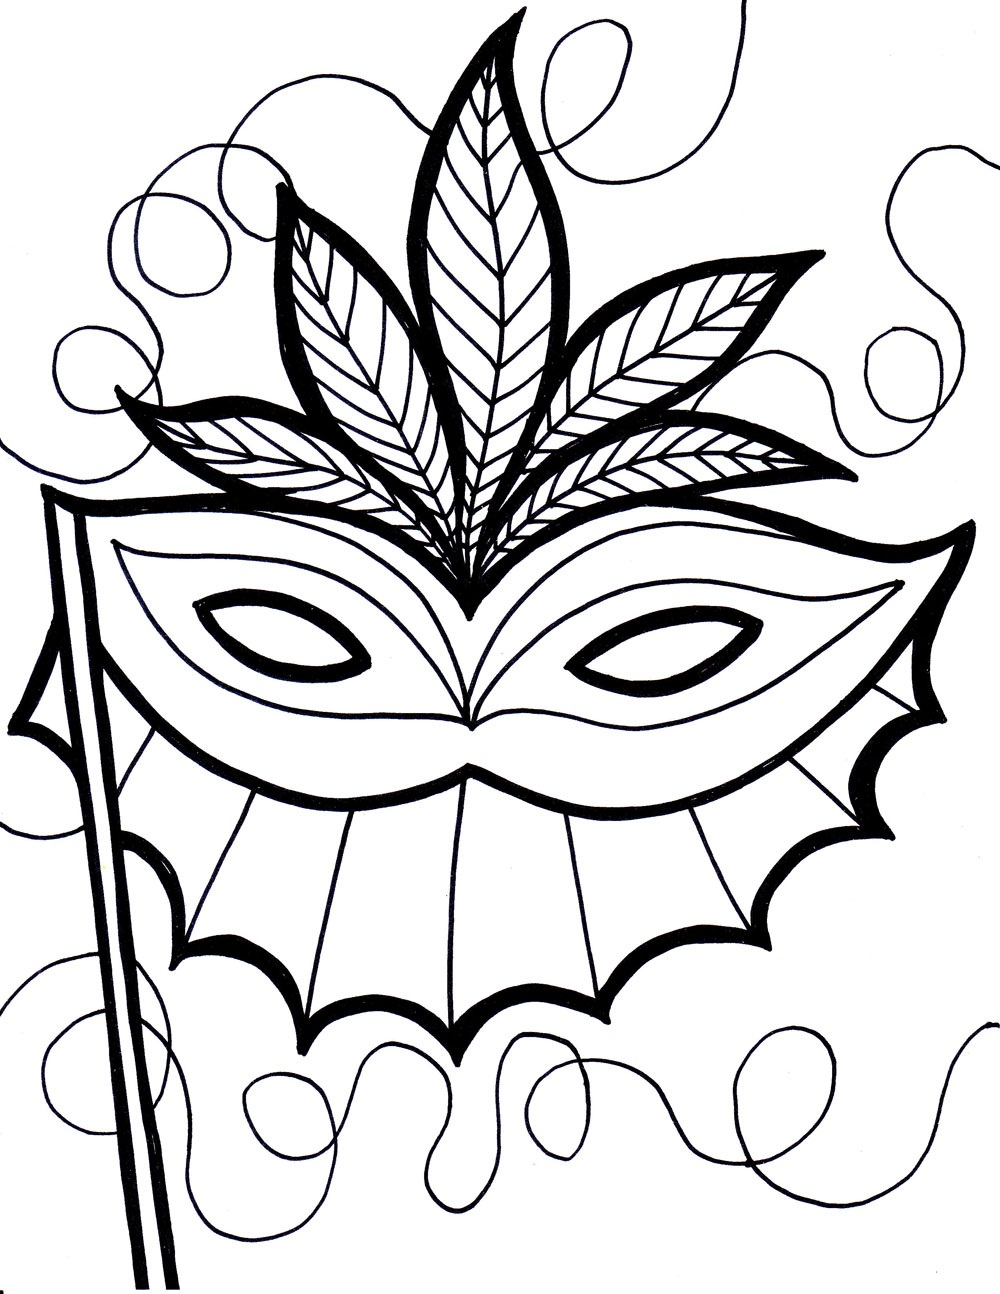 1000x1294 Free Printable Mardi Gras Coloring Pages For Kids Mardi Gras